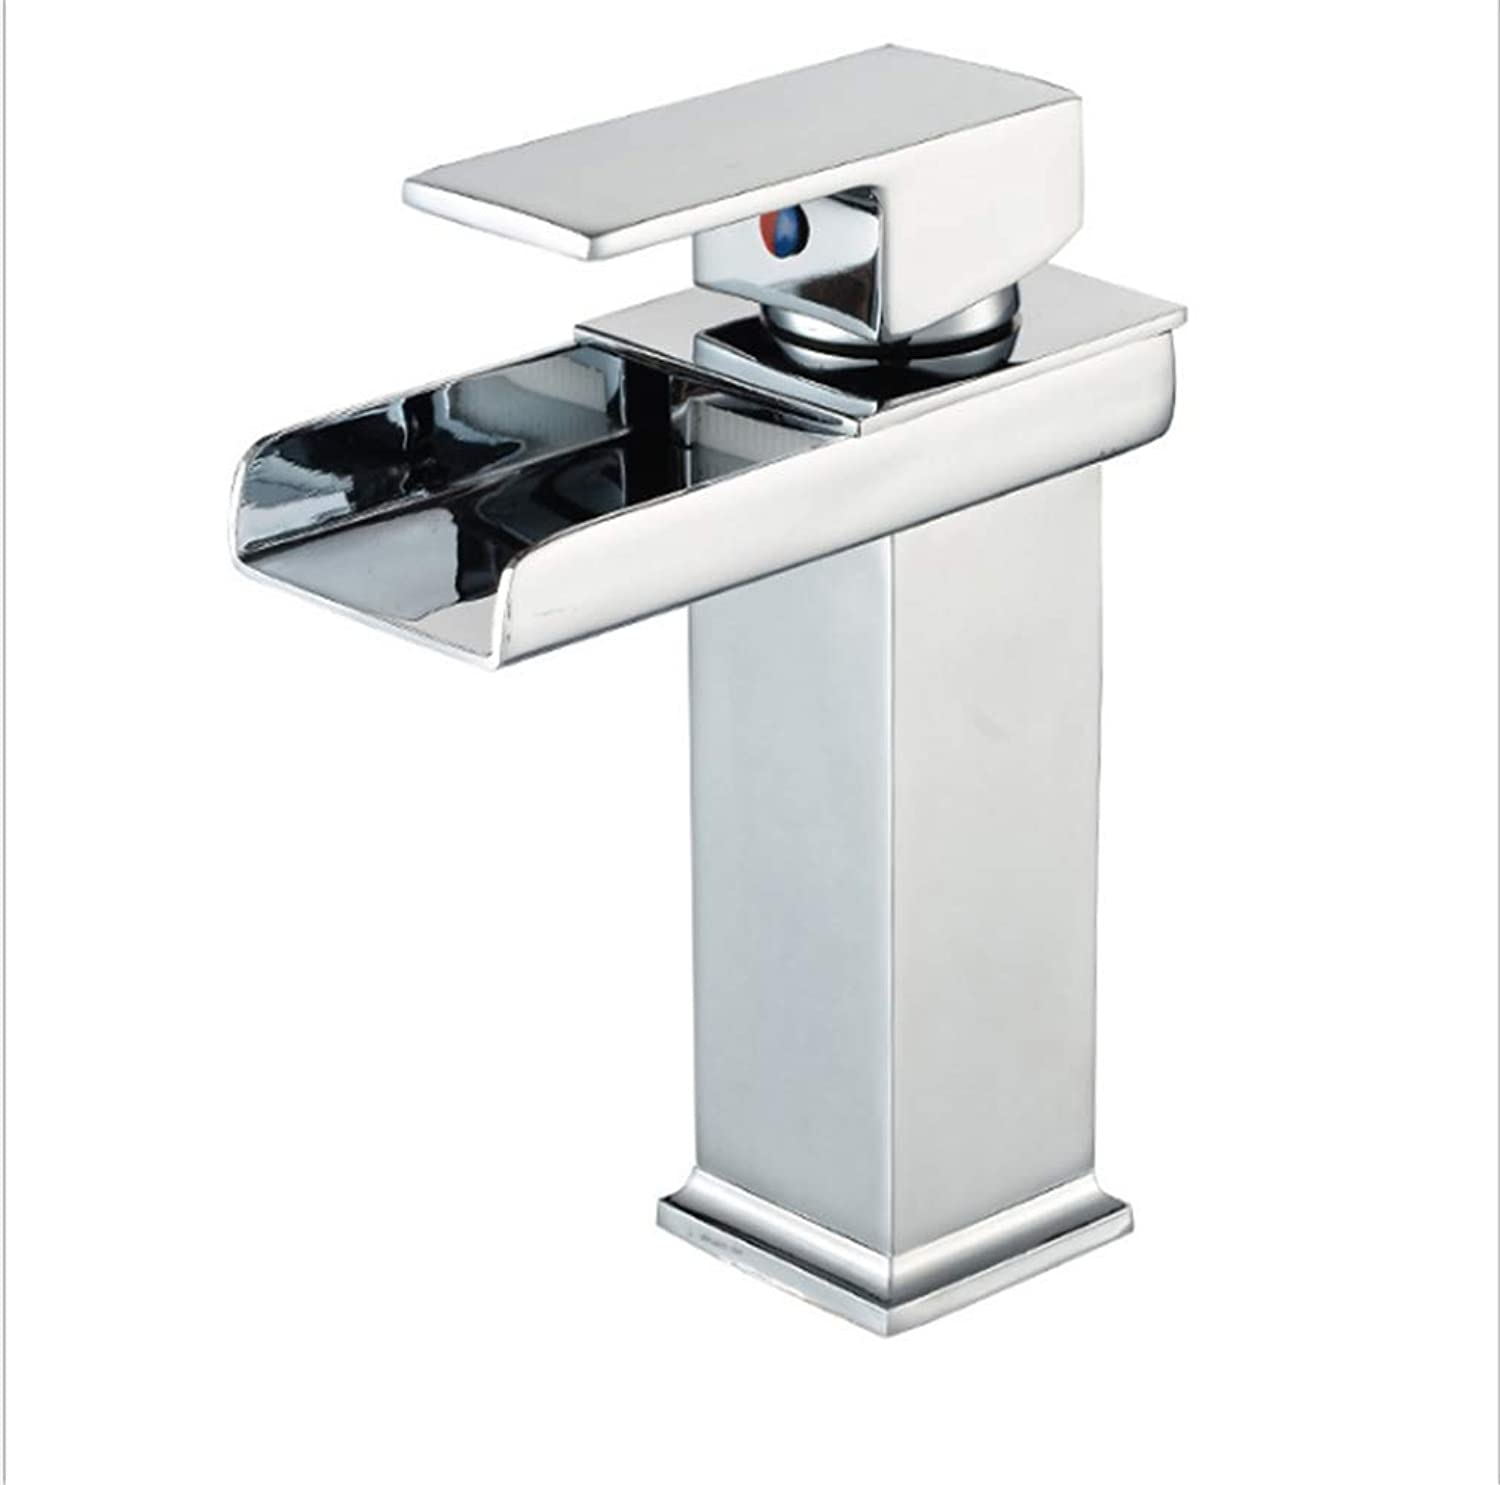 Kitchen Taps Faucet Modern Kitchen Sink Taps Stainless Steelcopper Basin Faucet Sifang Trough Waterfall Faucet Bathroom Table Basin Faucet